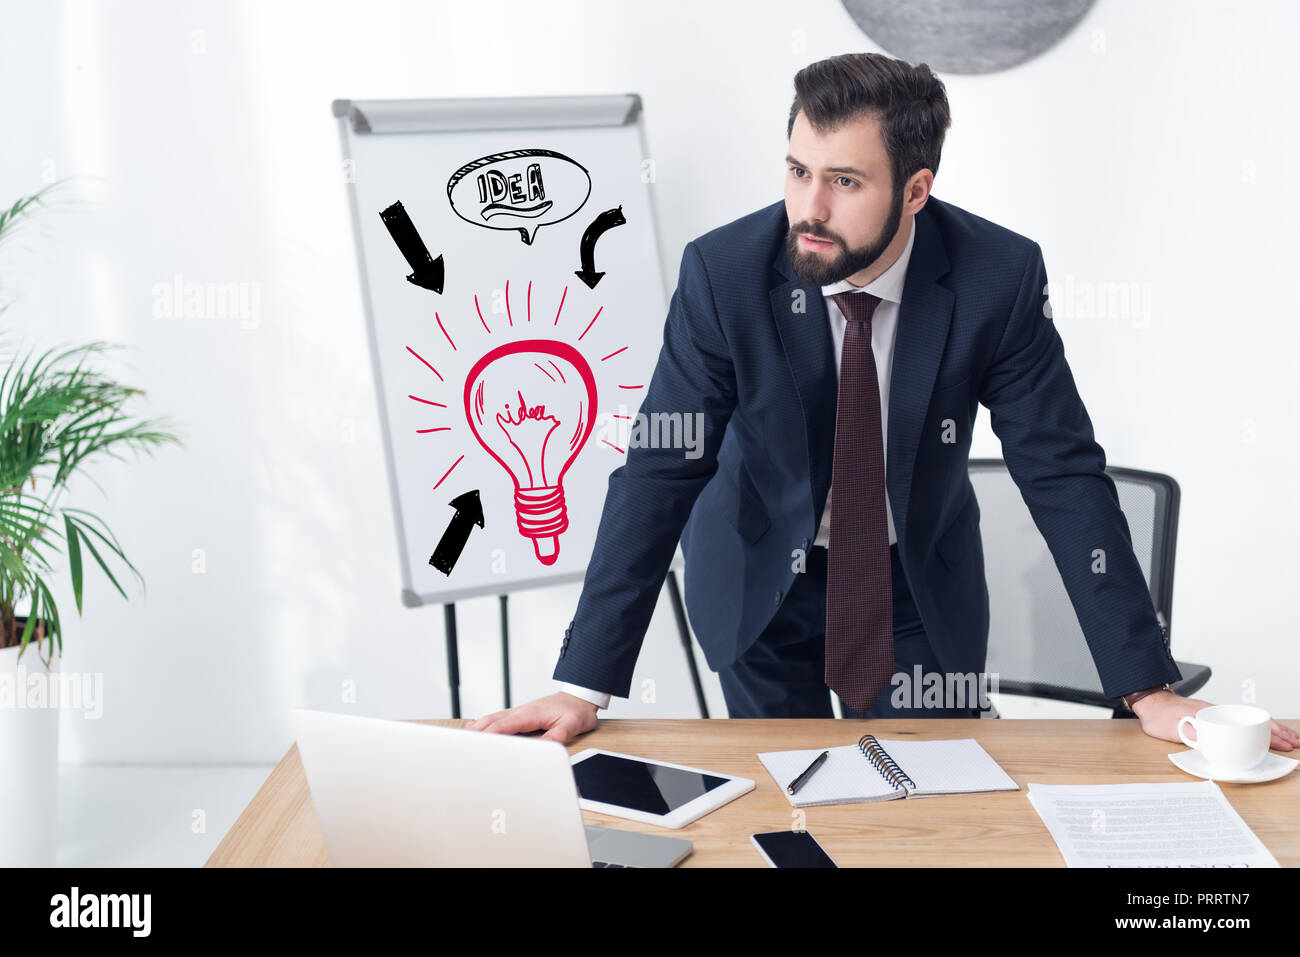 pensive businessman looking away at workplace in office with idea inscription and light bulb icon on whiteboard Stock Photo